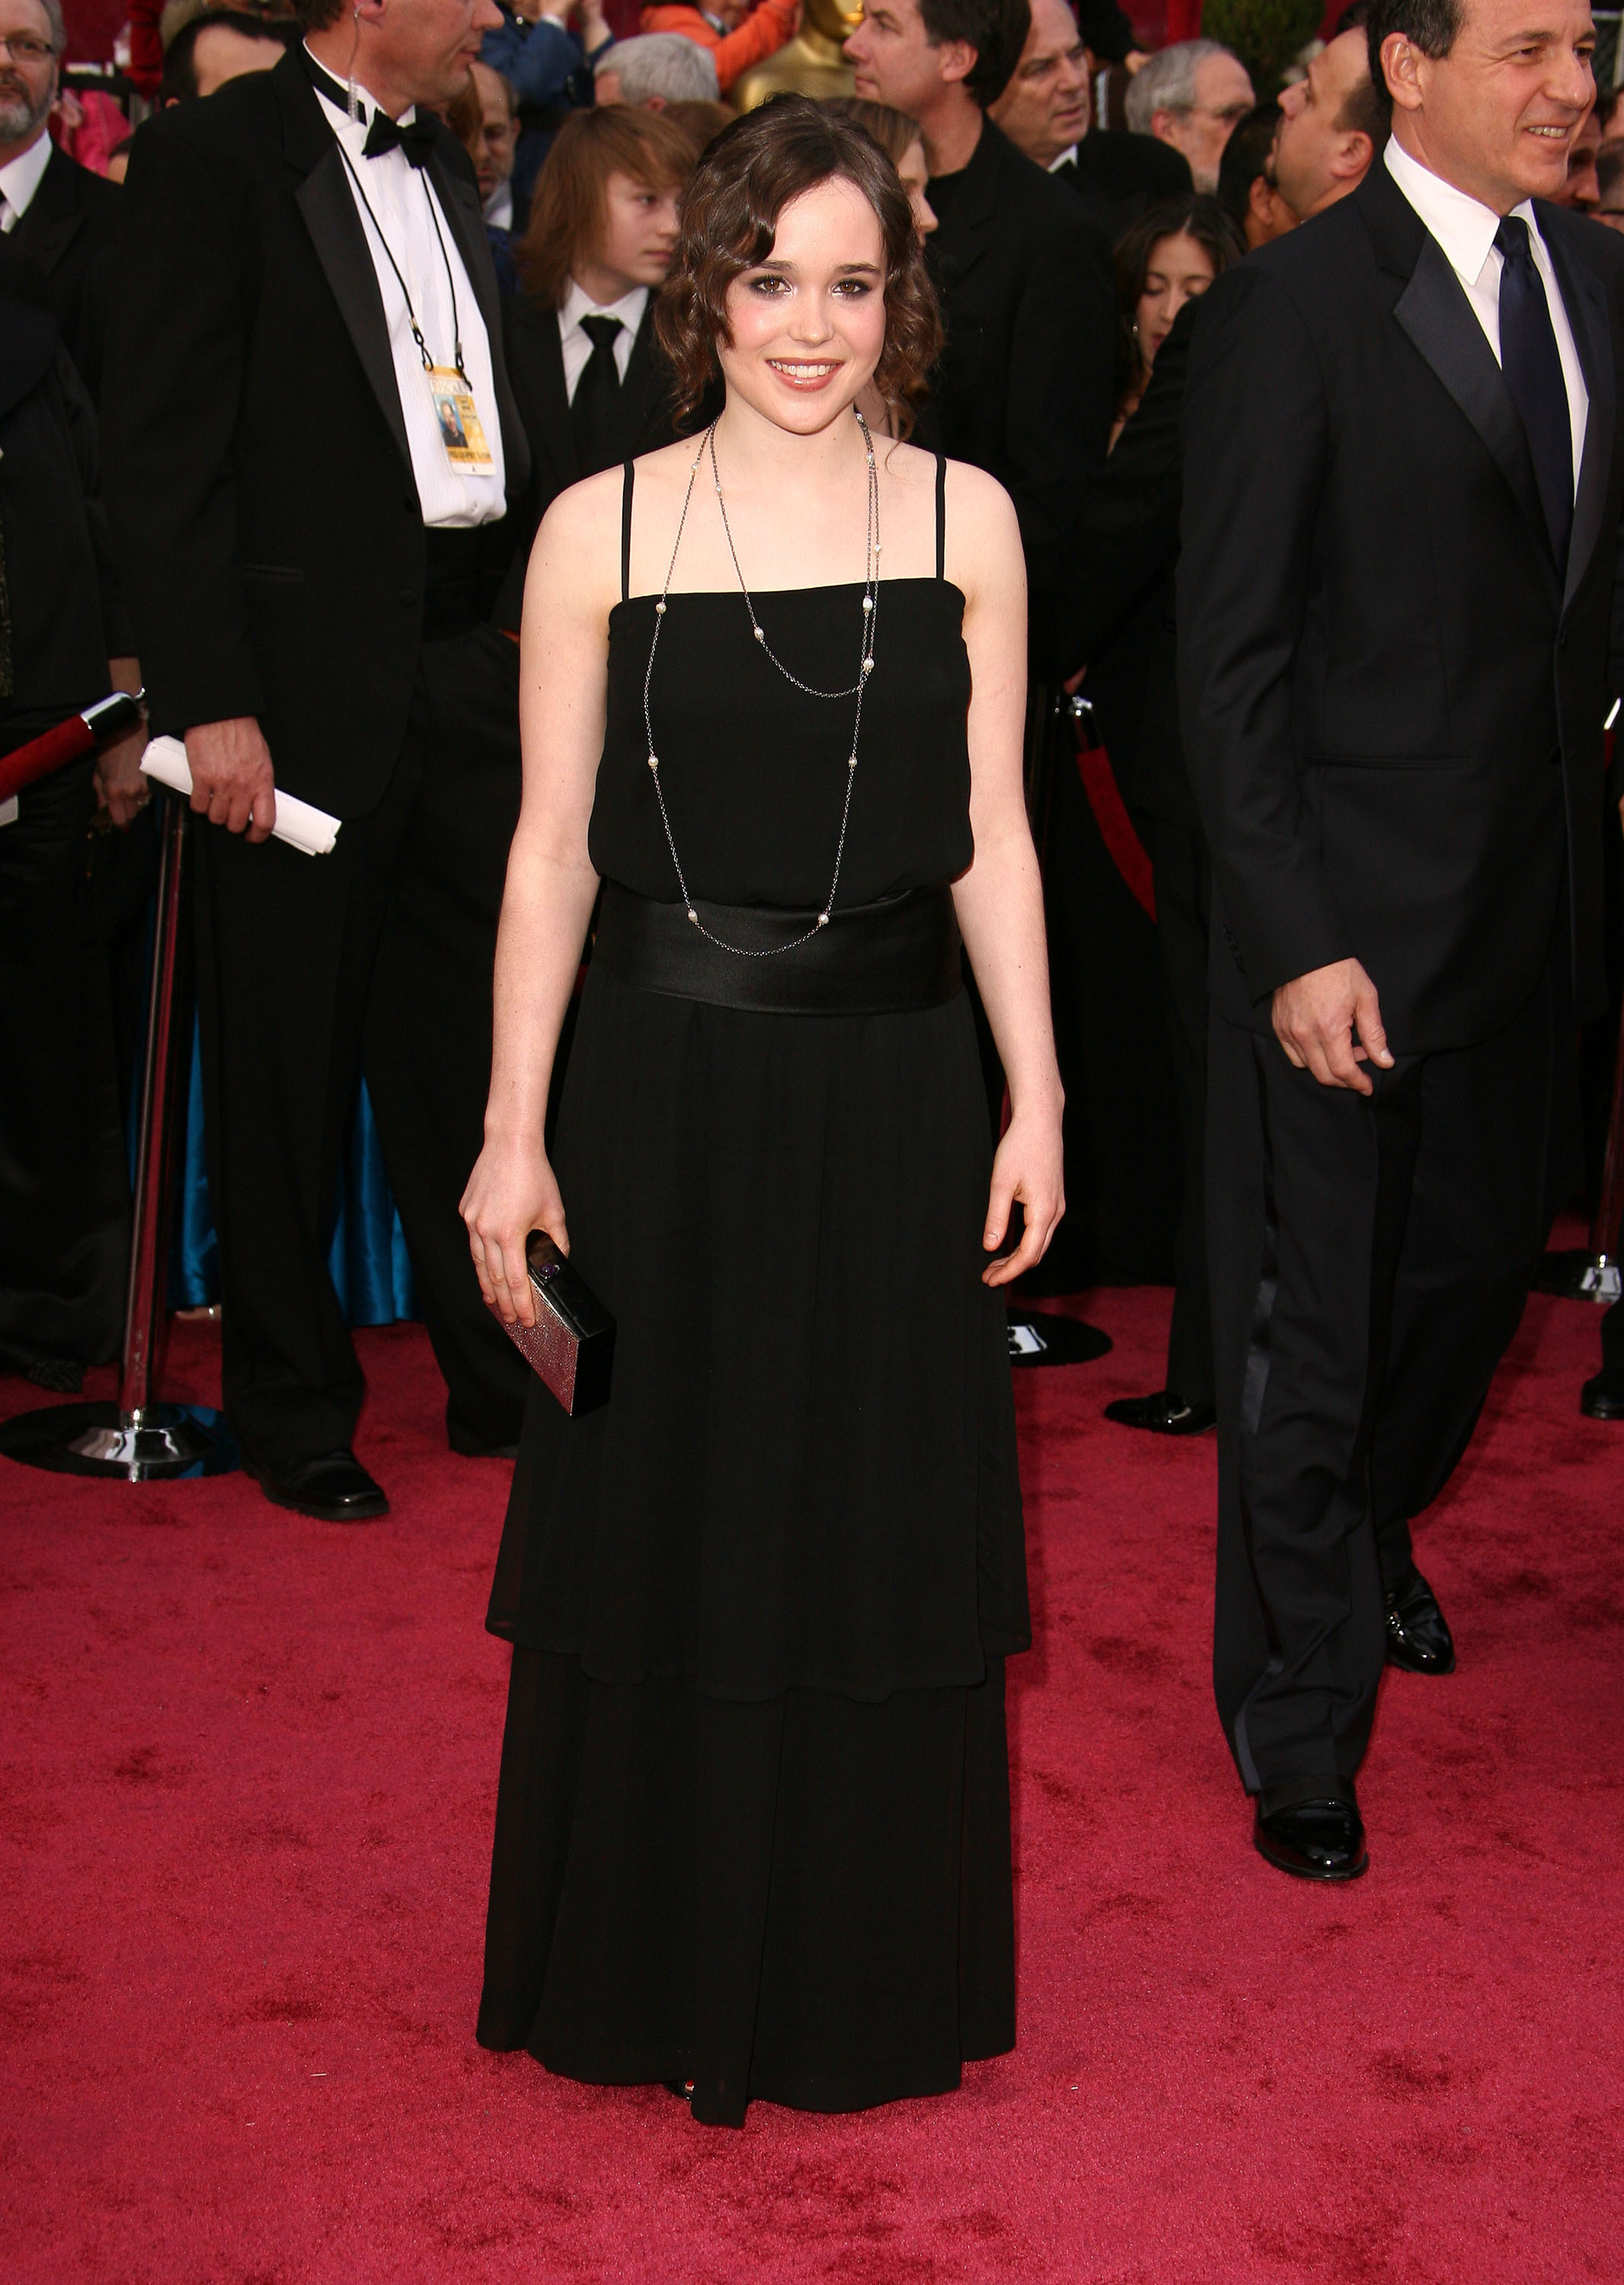 Ellen Page attends the 80th Annual Academy Awards at the Kodak Theatre in Los Angeles, California on Feb. 24, 2008.